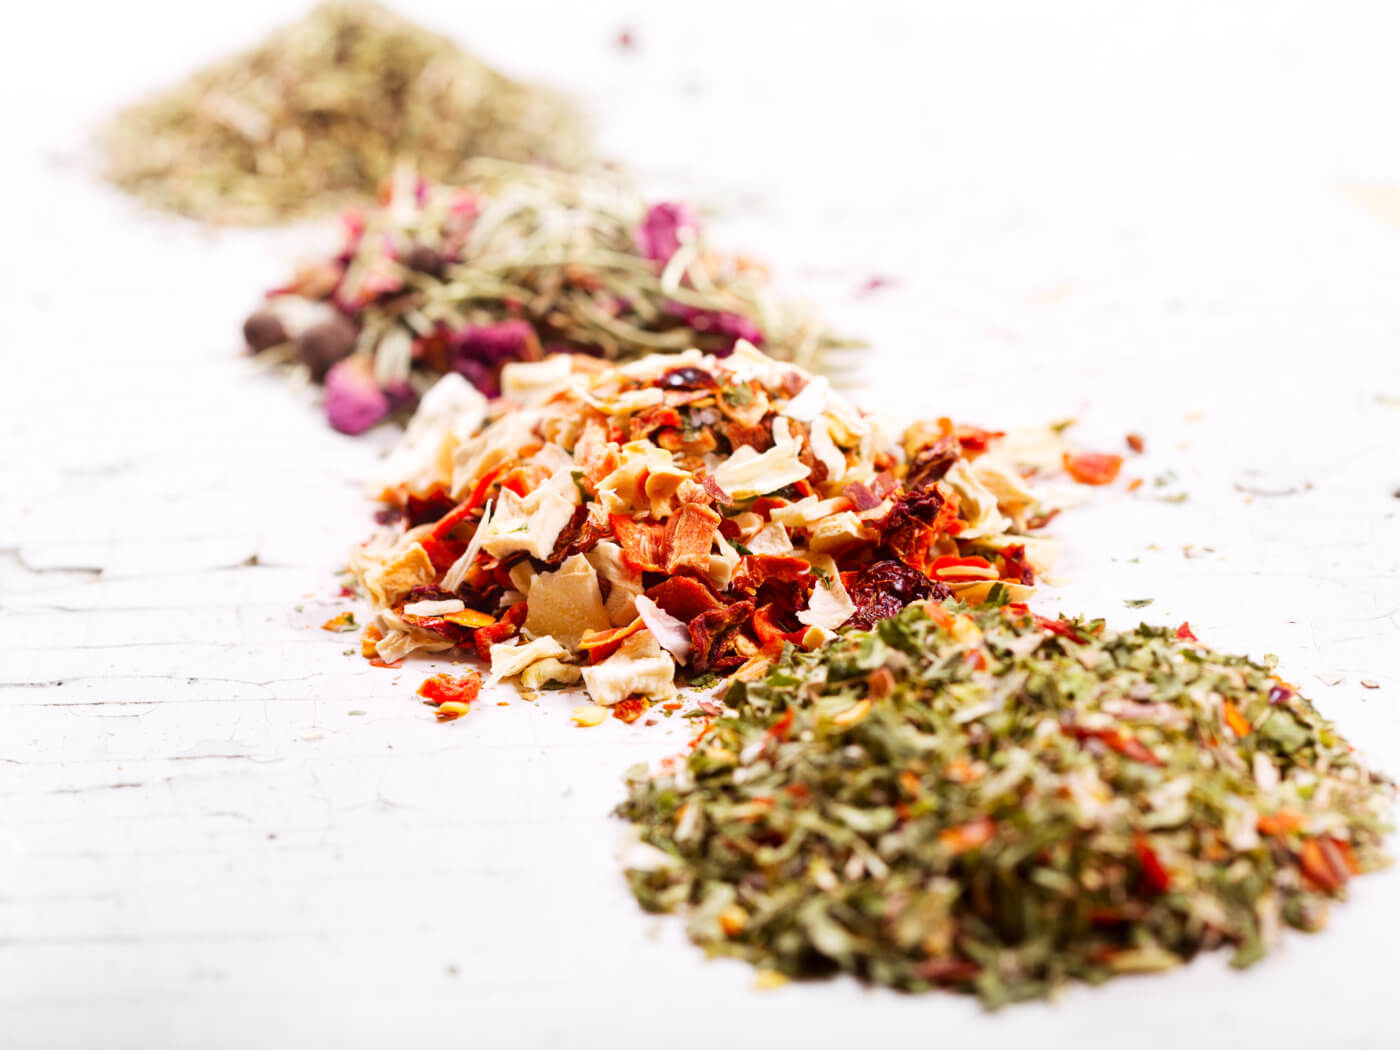 various dried herbs on old wooden table